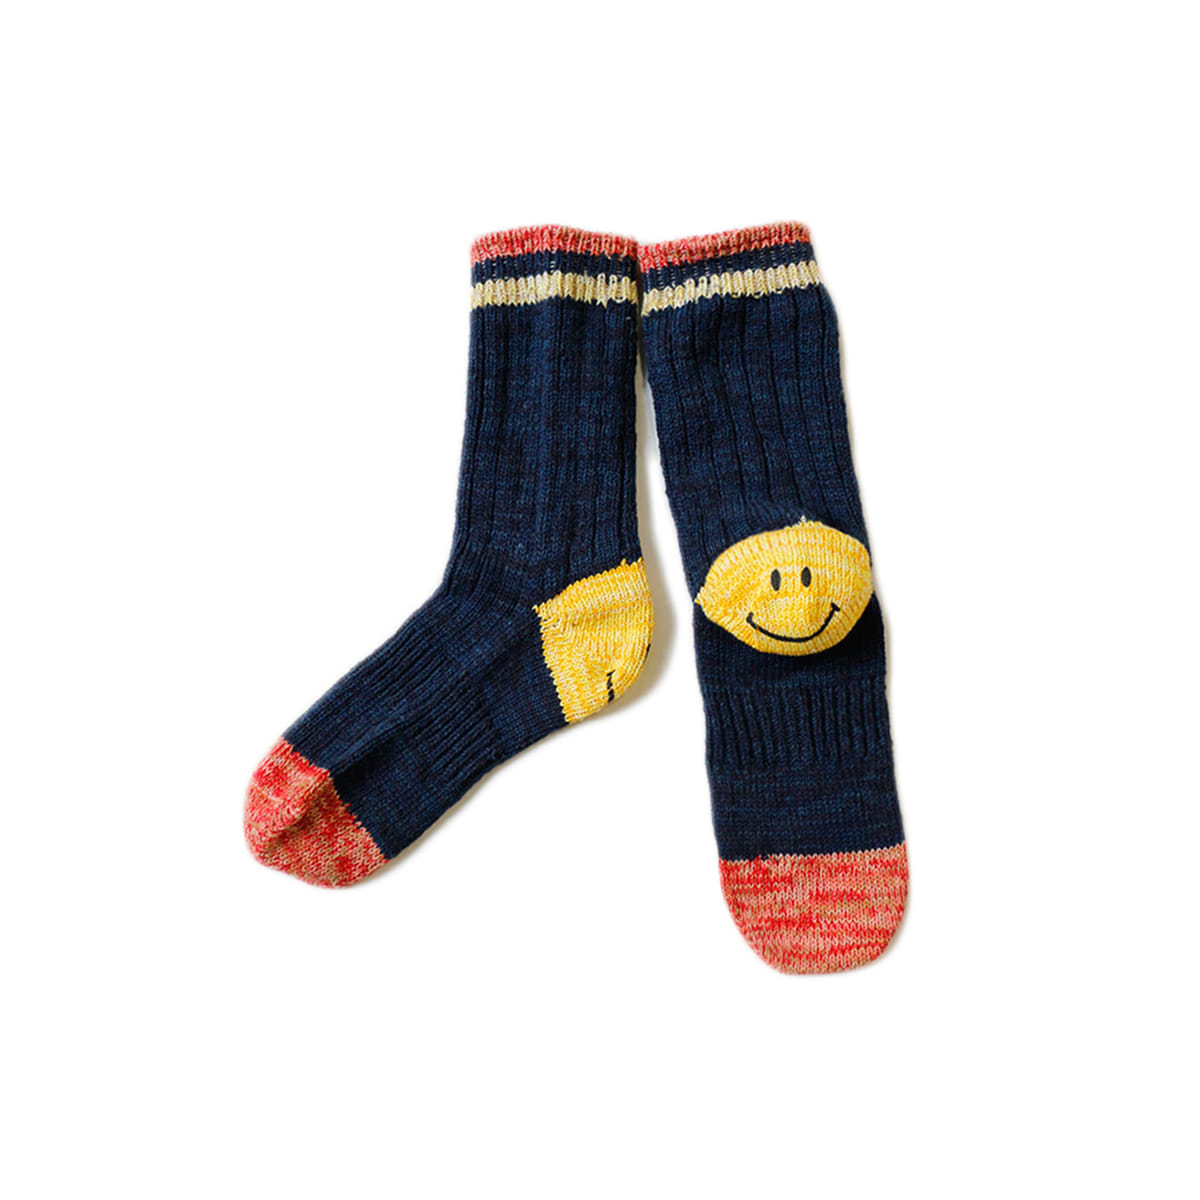 [KAPITAL] 64 YARNS IVY SMILE HEEL HOLD-WELL SOCKS 'NAVY'